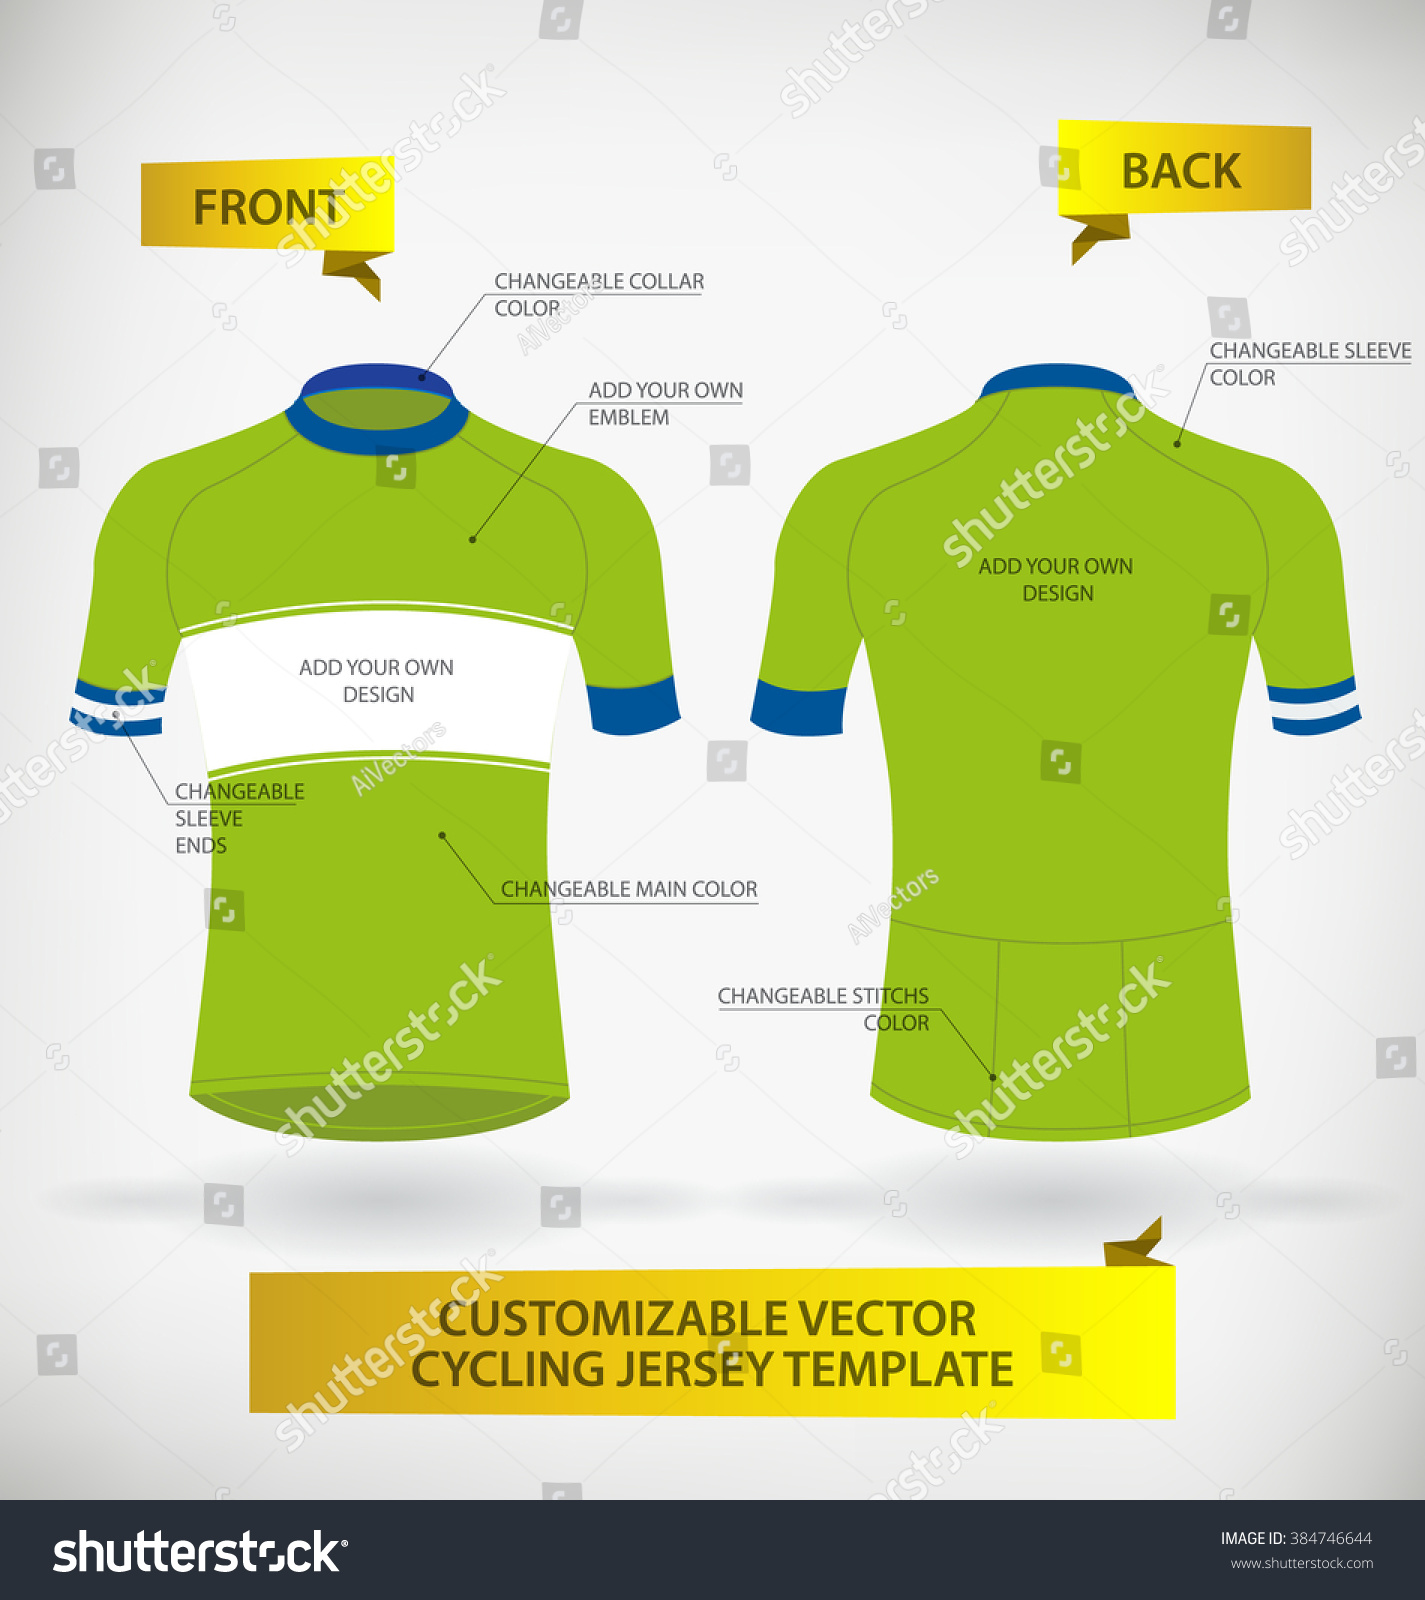 Design your own t-shirt and save it - Customizable Vector Cycling Jersey Template Preview Save To A Lightbox